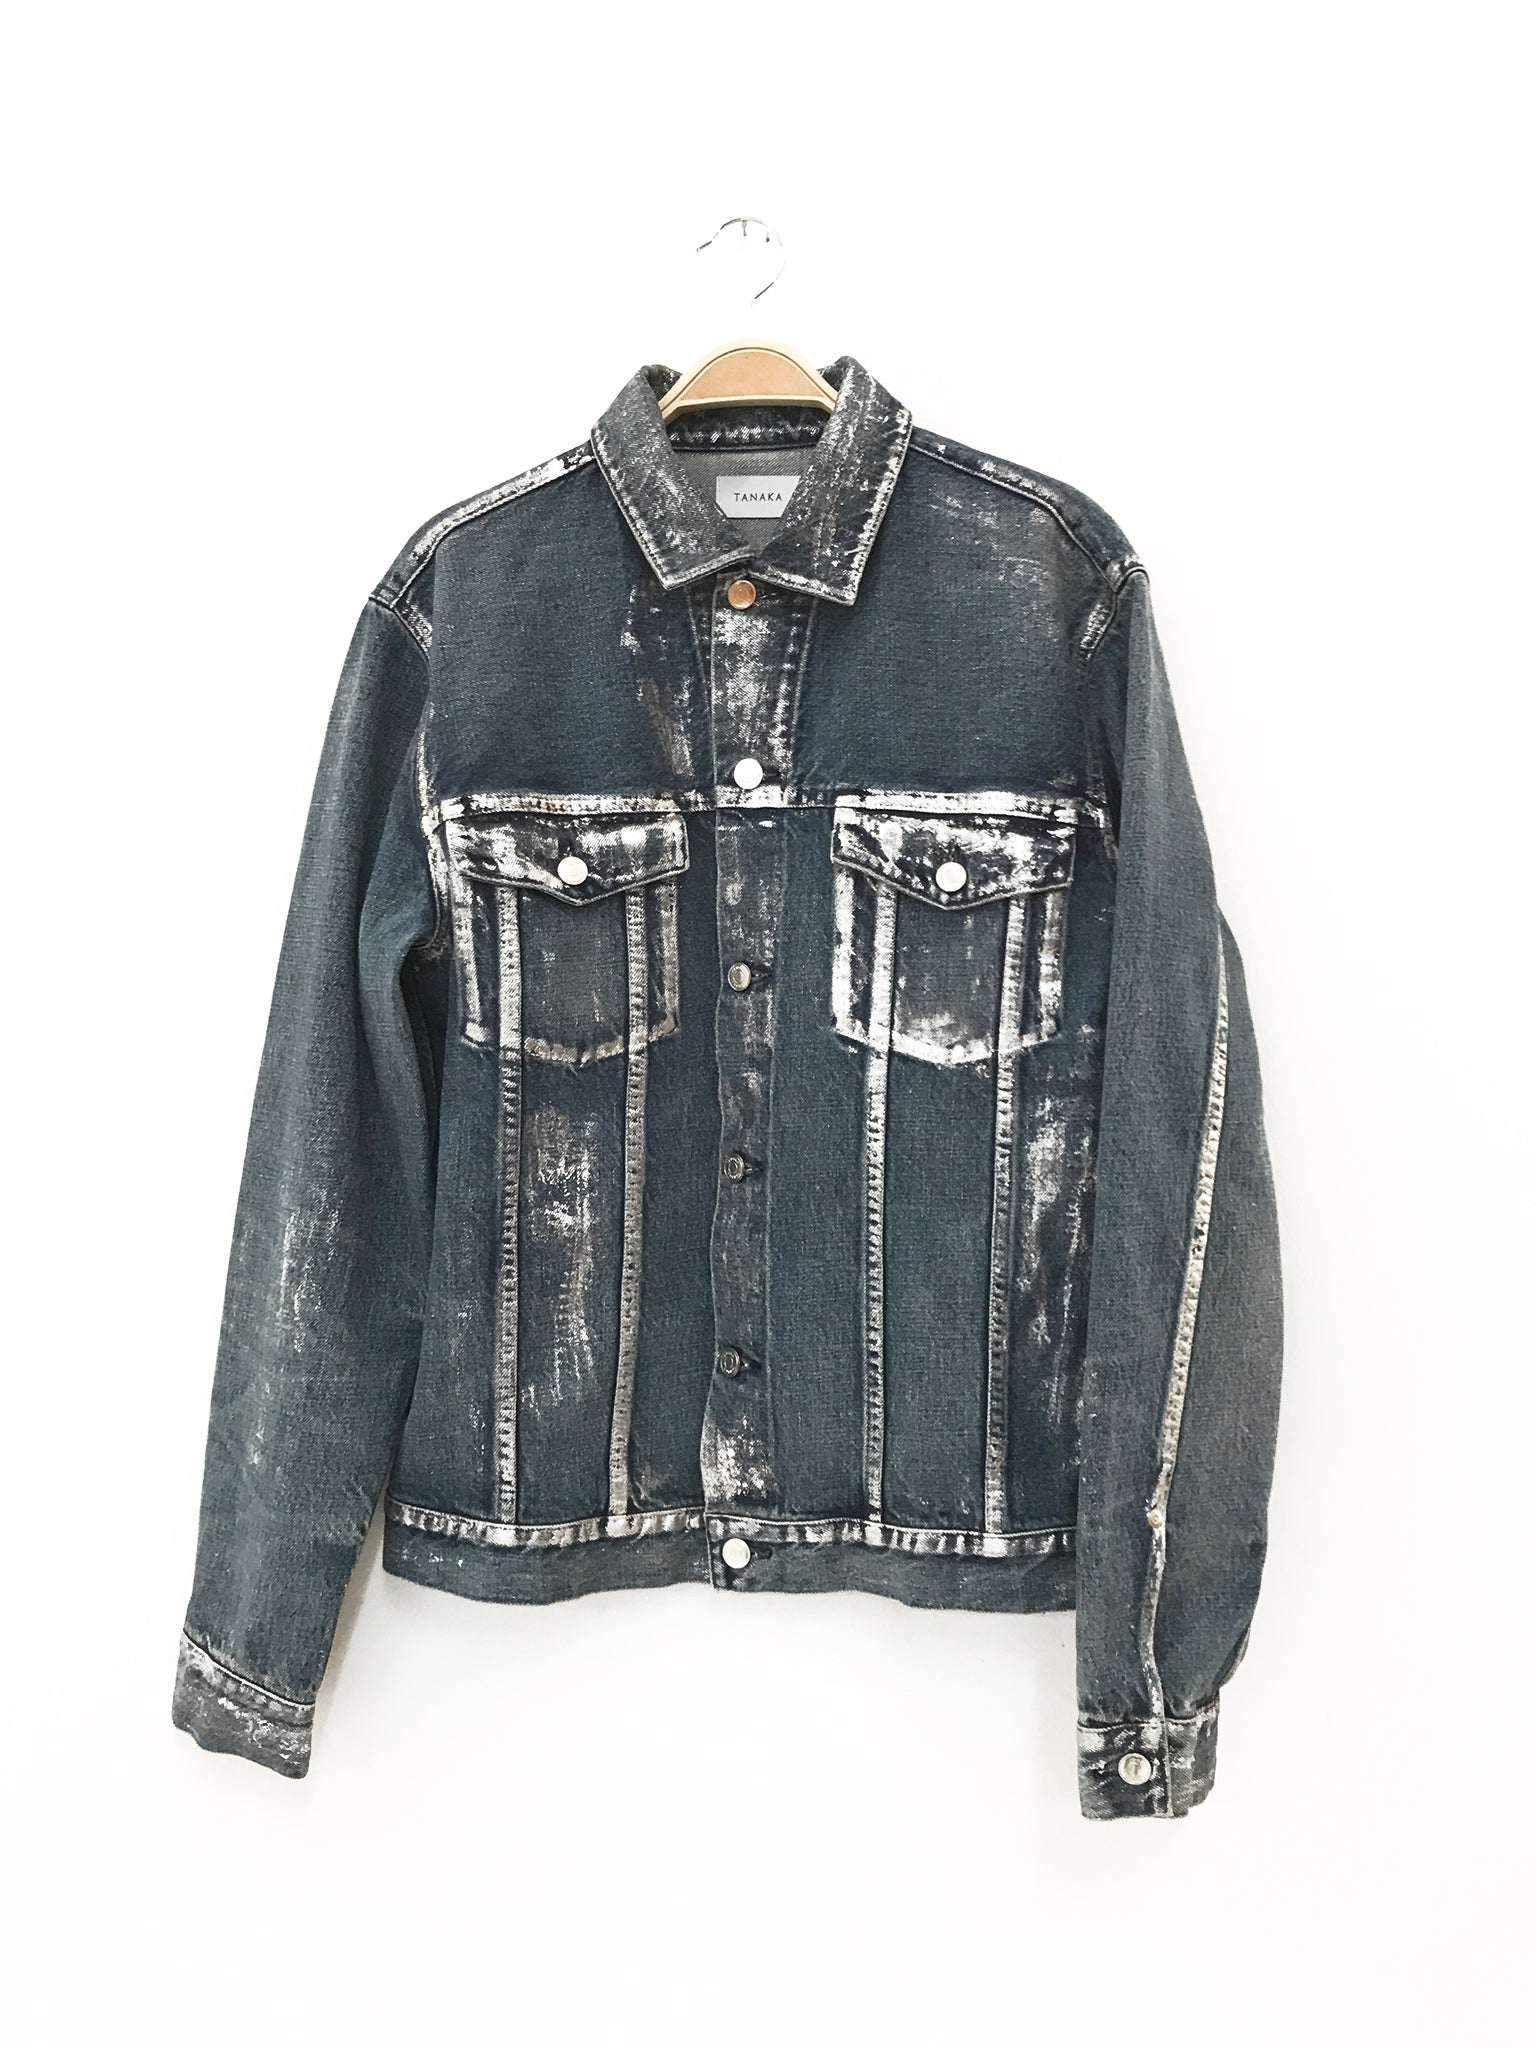 tanaka japanese selvage denim jacket